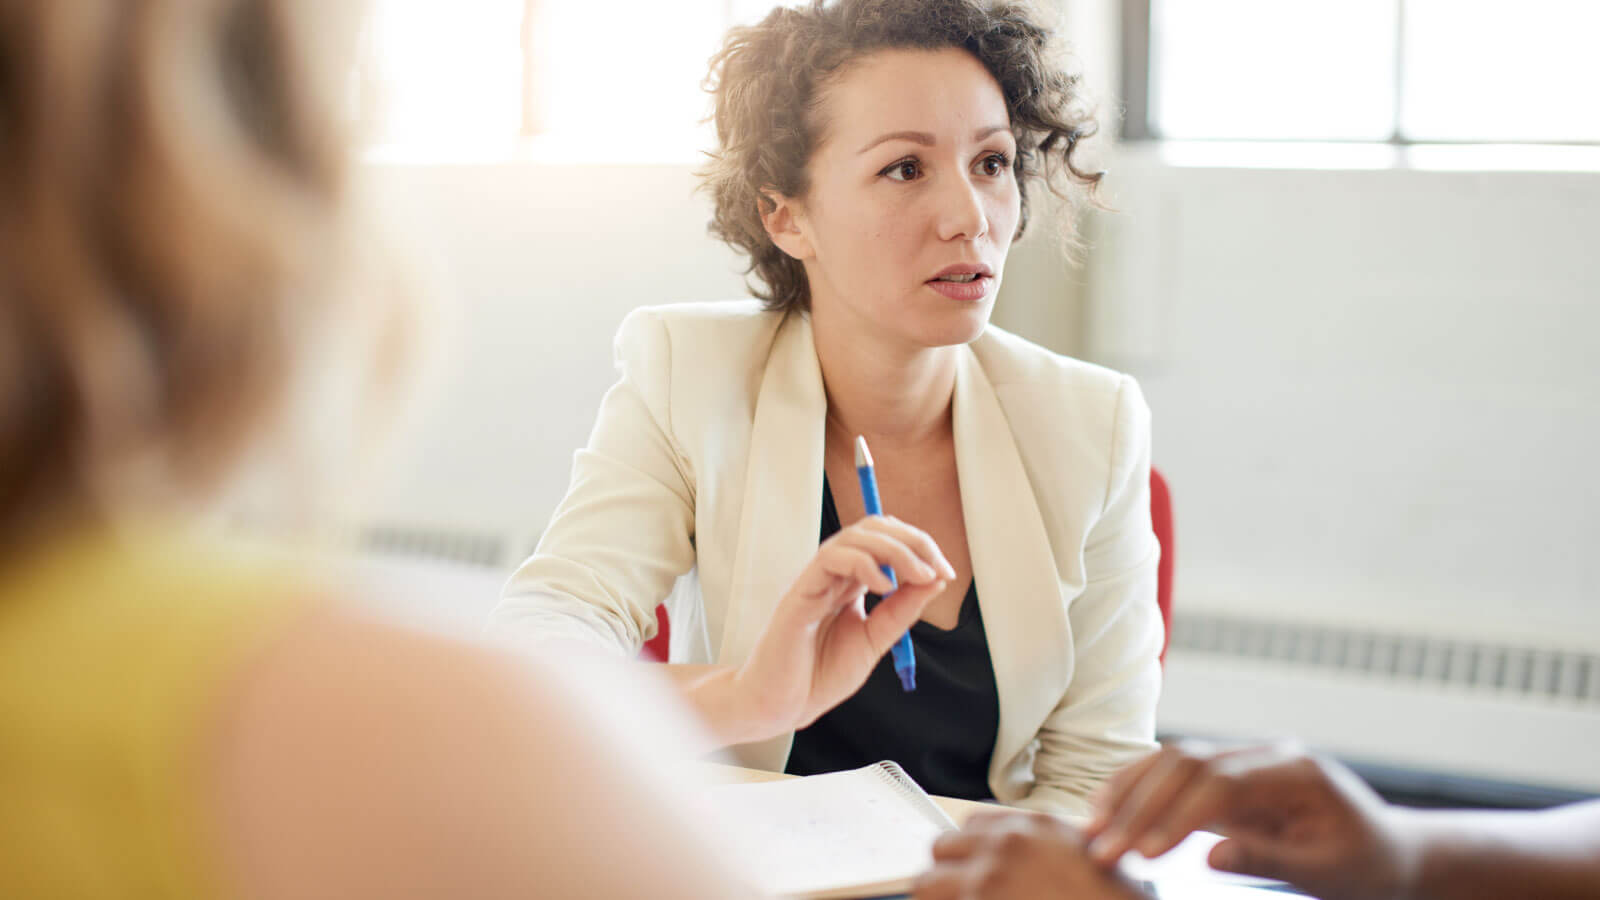 13 Of The Smartest Questions To Ask A Hiring Manager